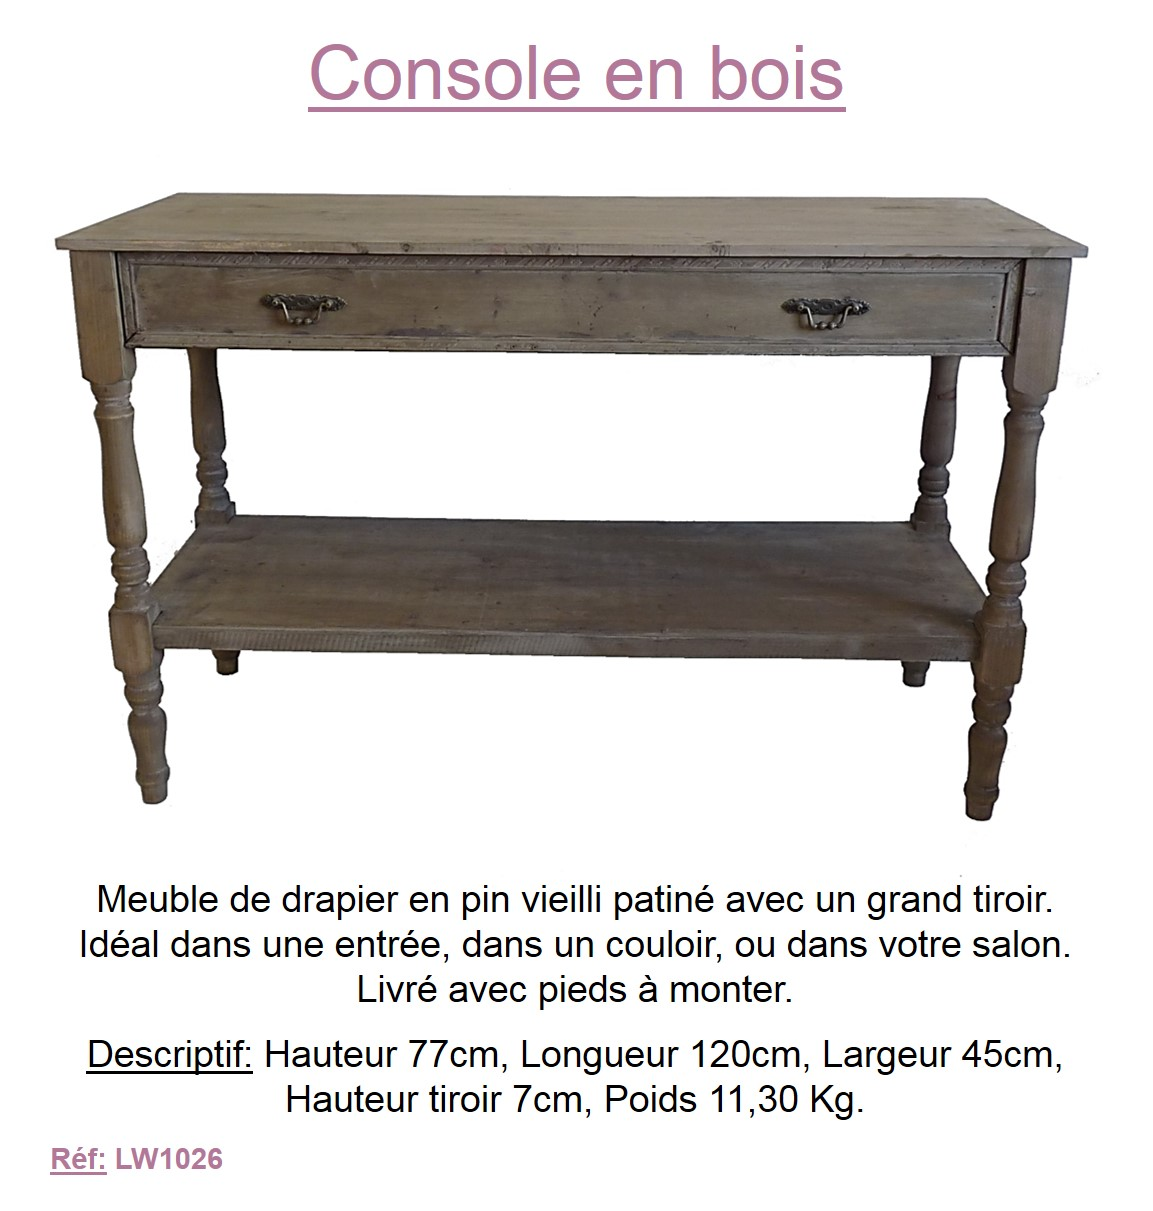 meuble de rangement console commode table de drapier etagere en vieux bois ebay. Black Bedroom Furniture Sets. Home Design Ideas